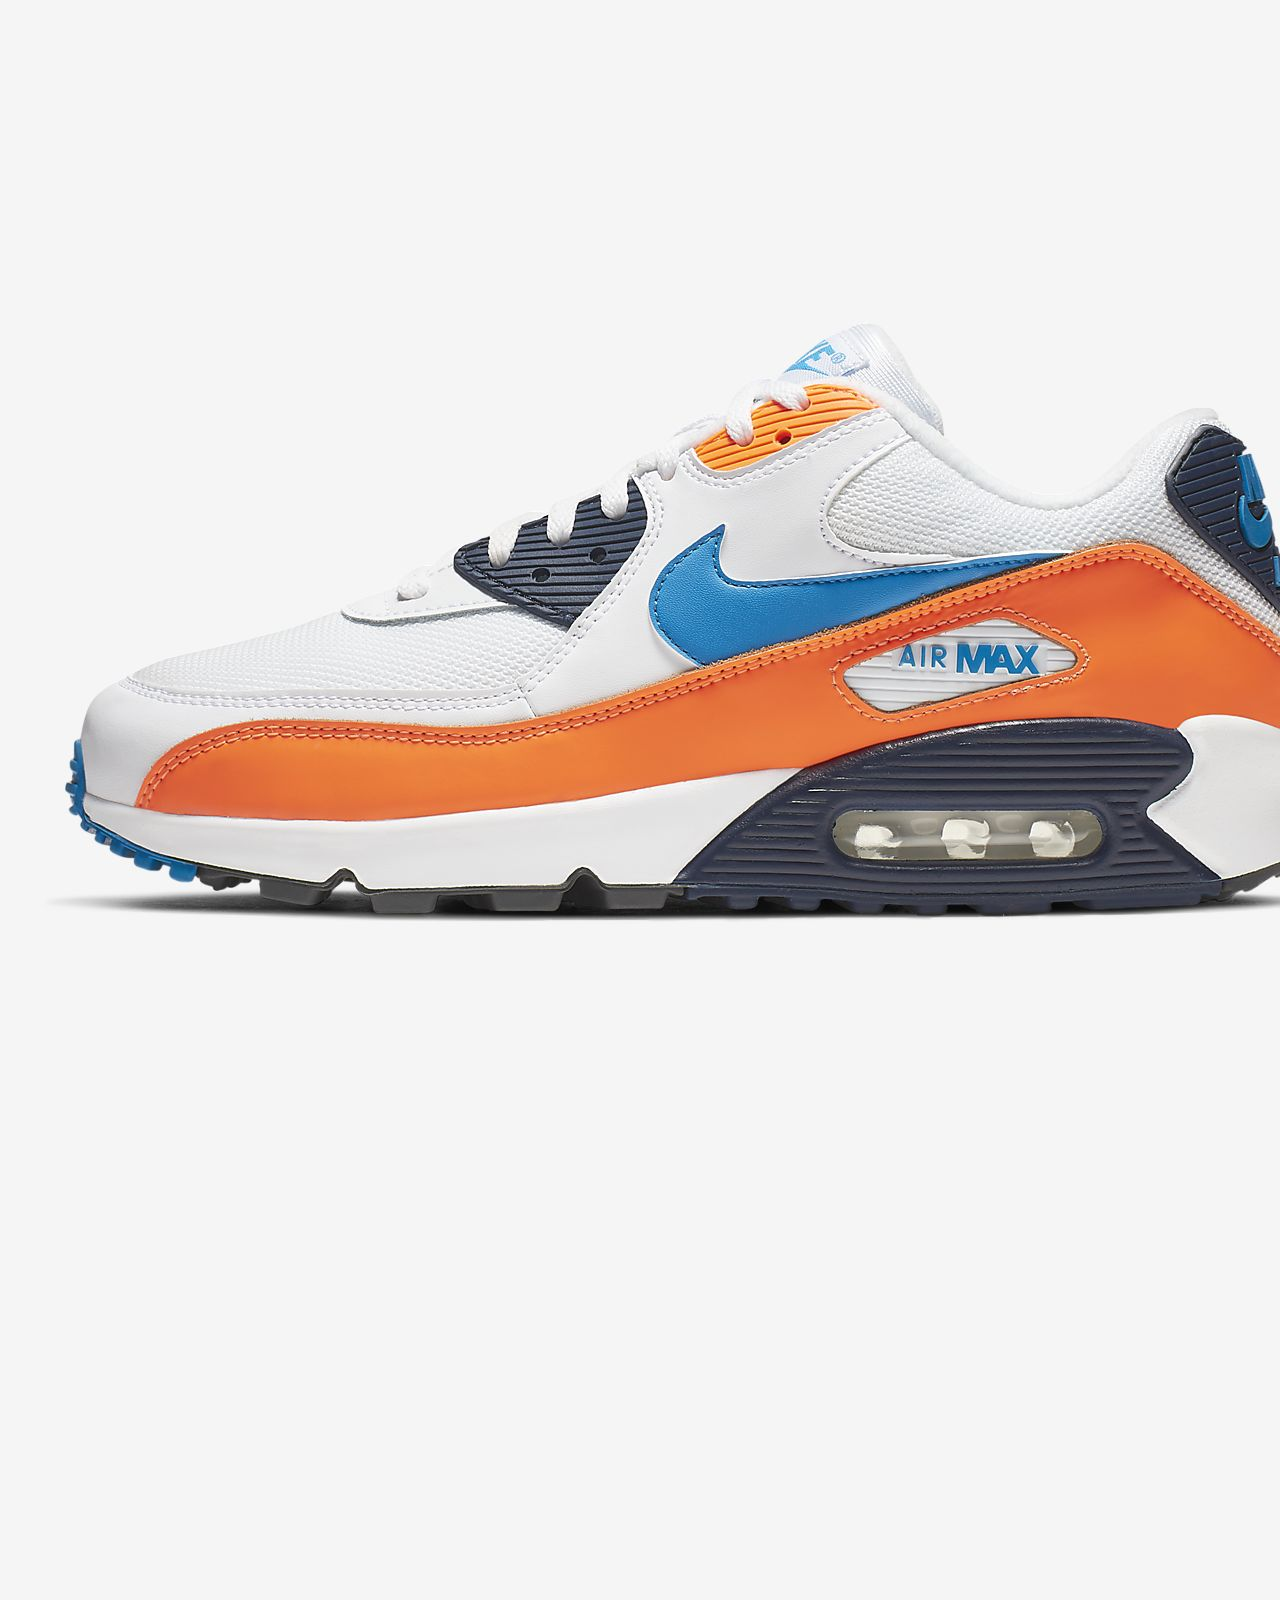 separation shoes 9edf9 36069 ... Nike Air Max 90 Essential Men s Shoe